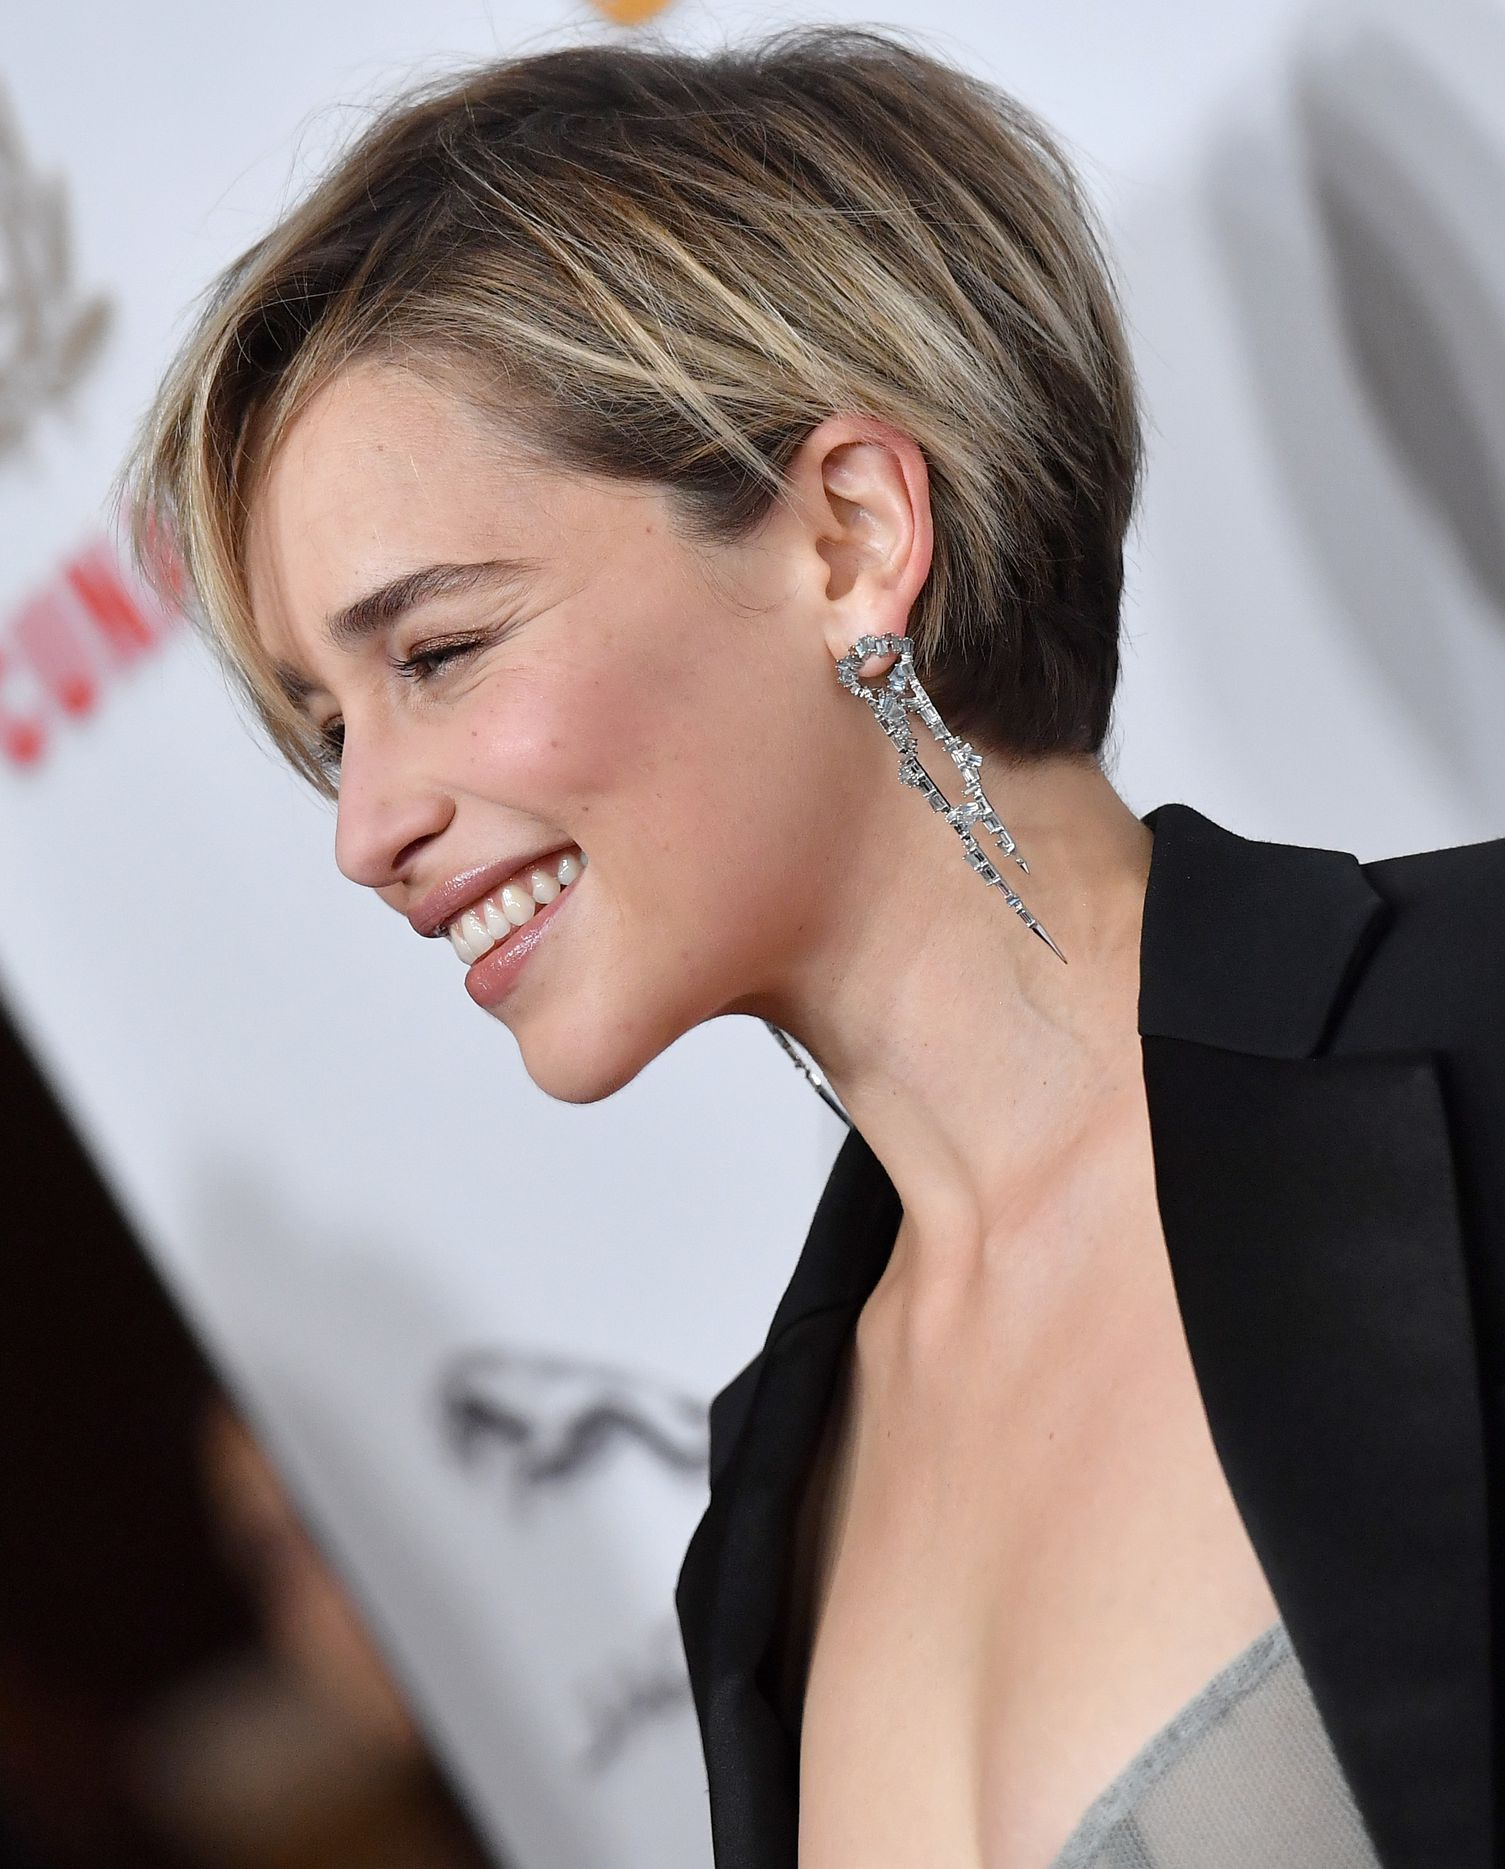 100+ Short Hairstyles and Haircut Inspo for All Hair Types #shorthairstylesforwomen